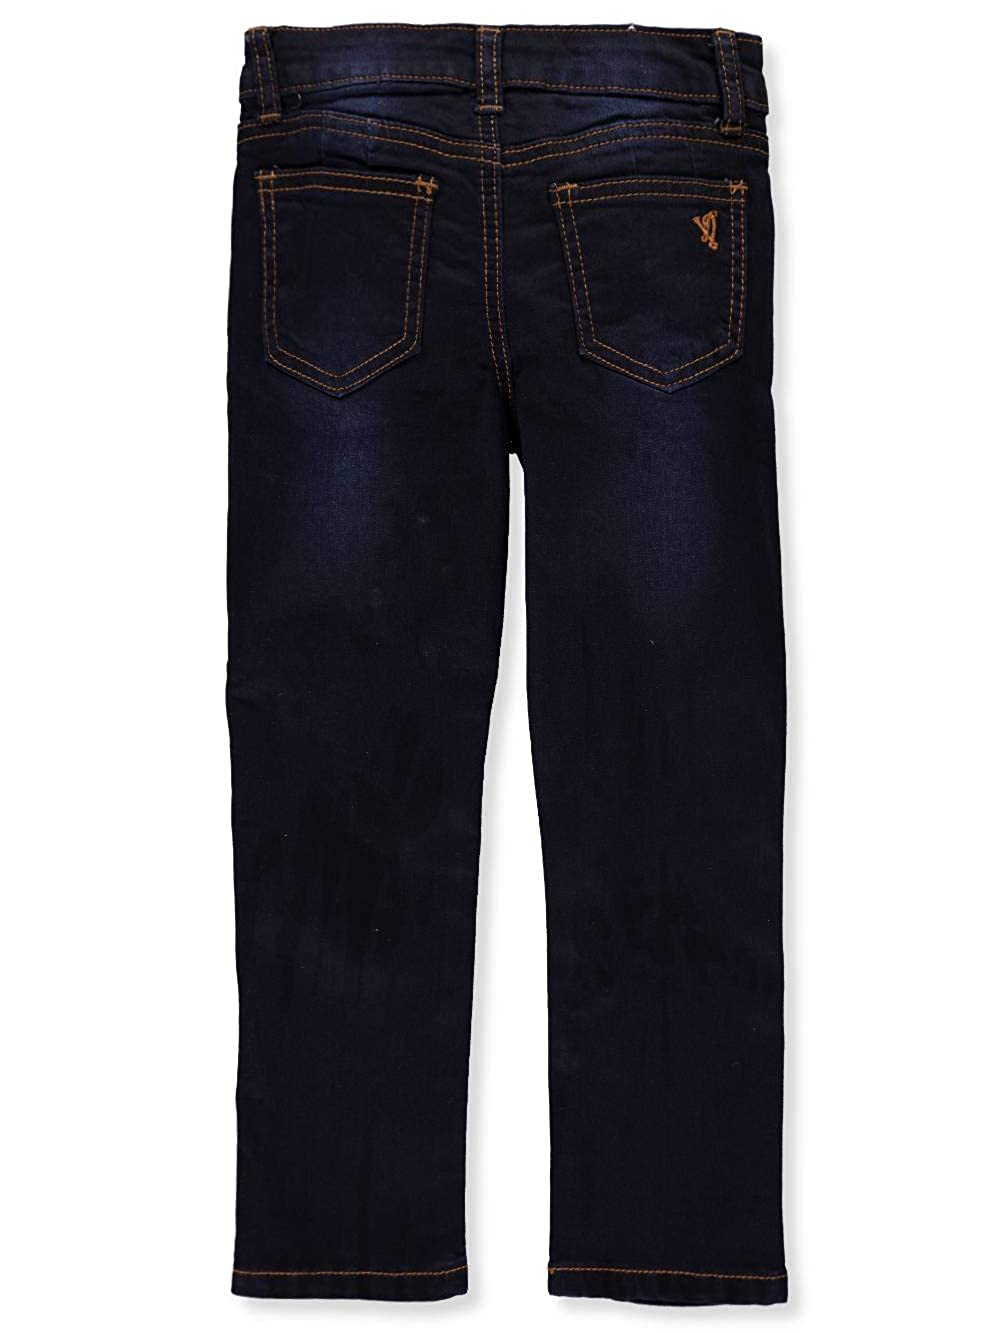 VIP Jeans Girls Jeans